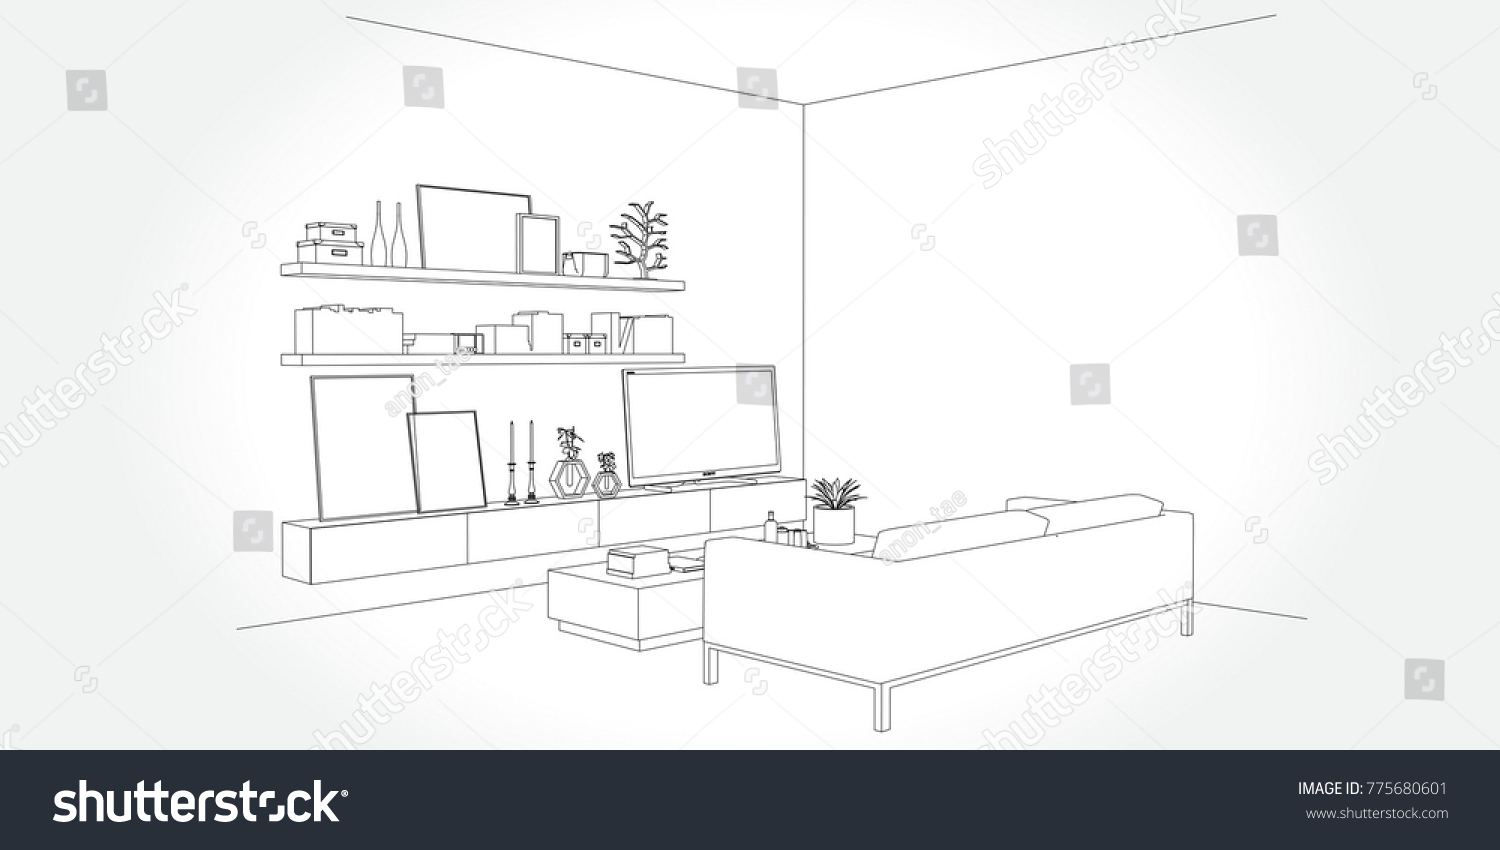 Linear Sketch Interior Living Room Plan Stock Vector 775680601 ...